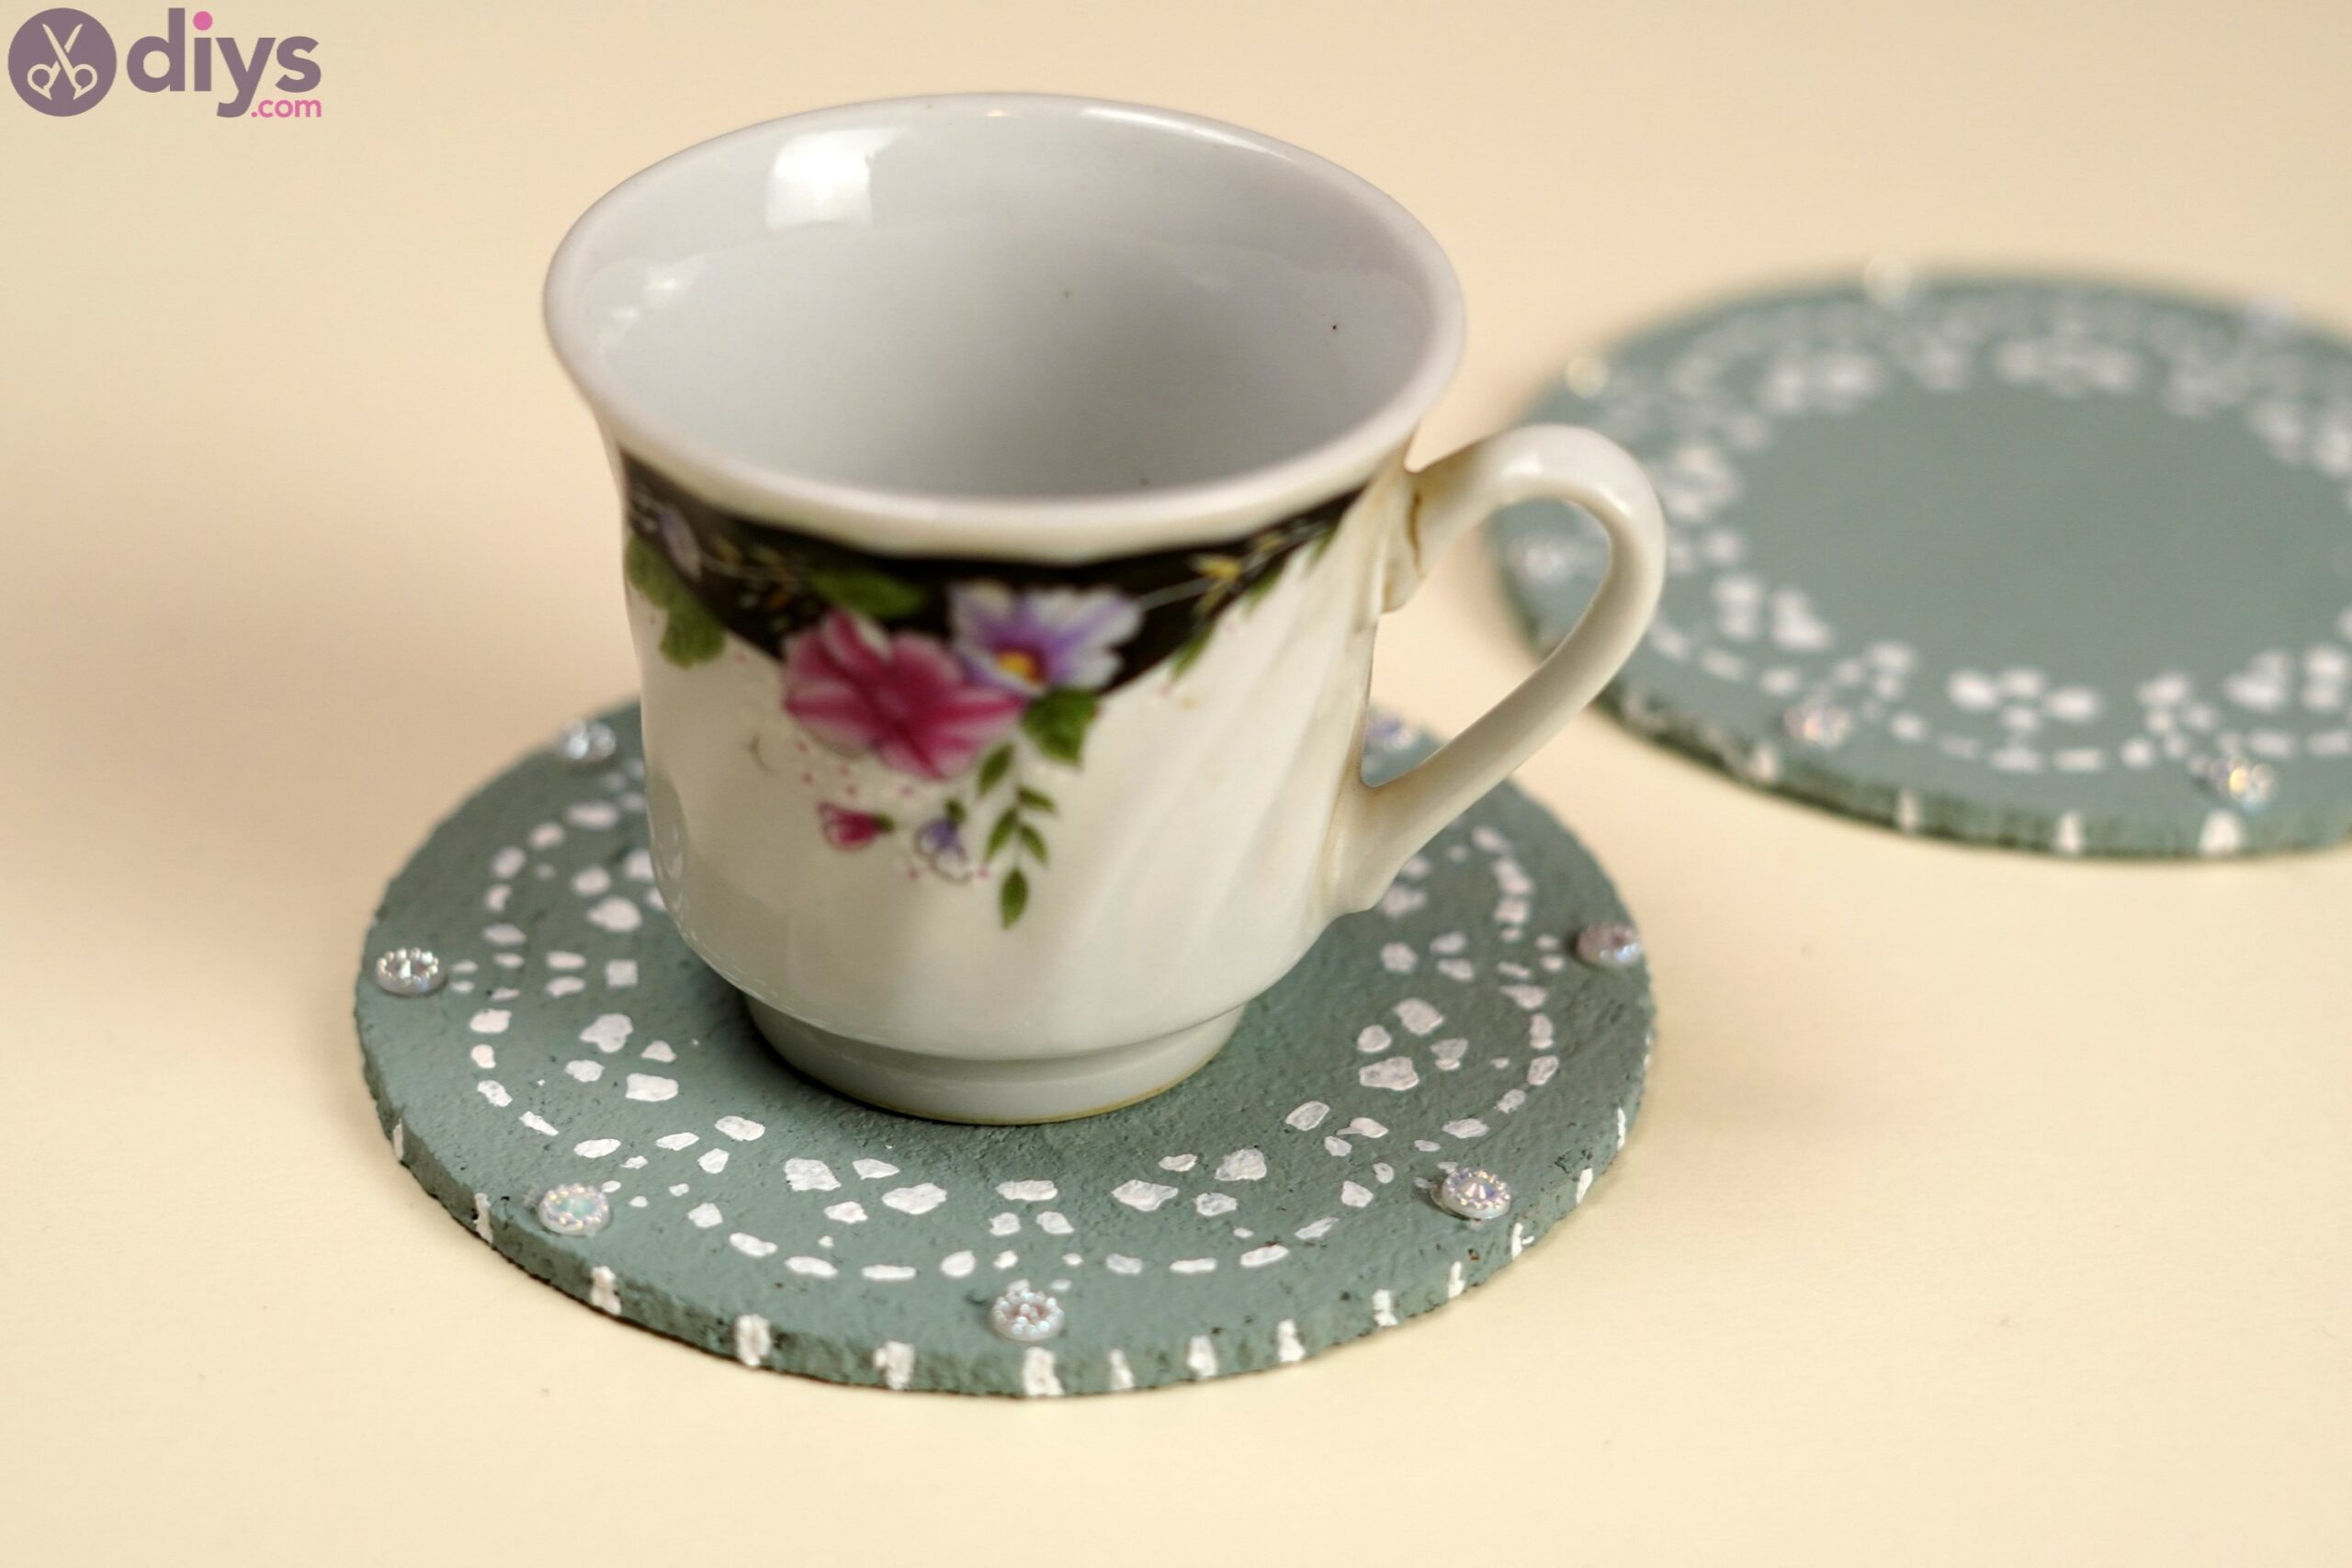 Diy Coasters With Lace Paper Make Your Own Beautiful Coasters